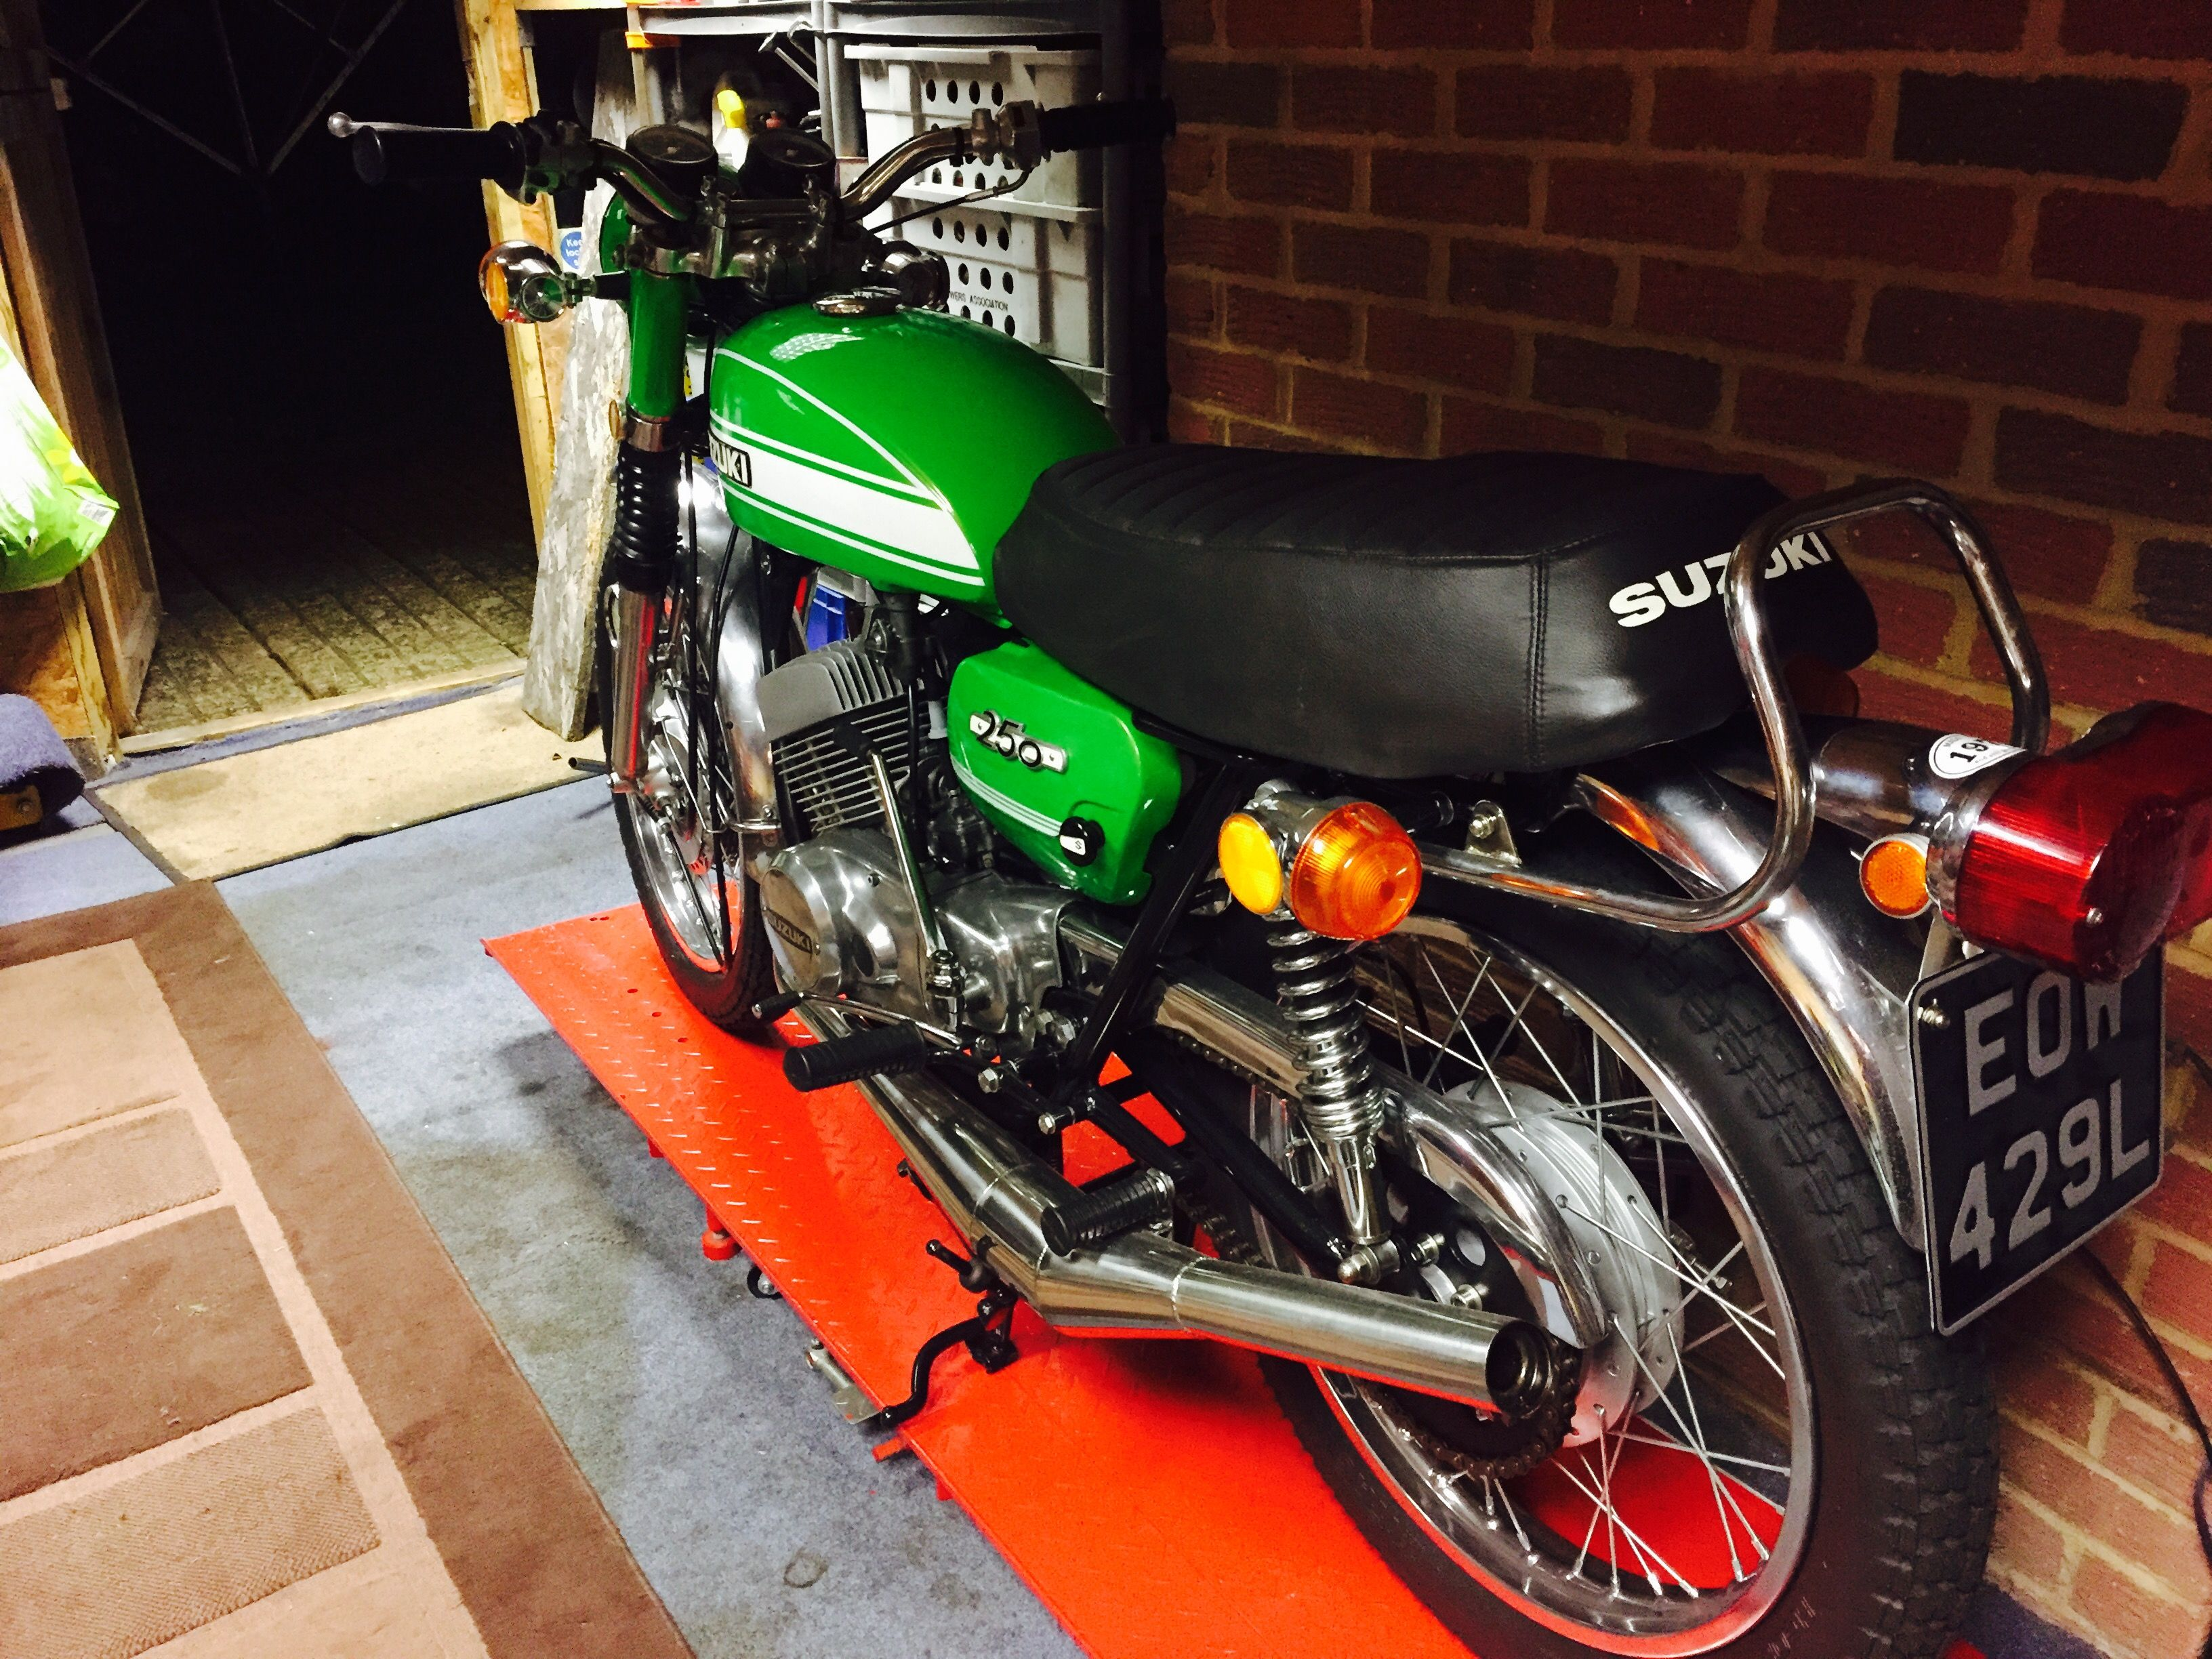 medium resolution of  suzuki t250 t350 r t500 large colour wiring diagrams index listing on motorcycle tow hitches